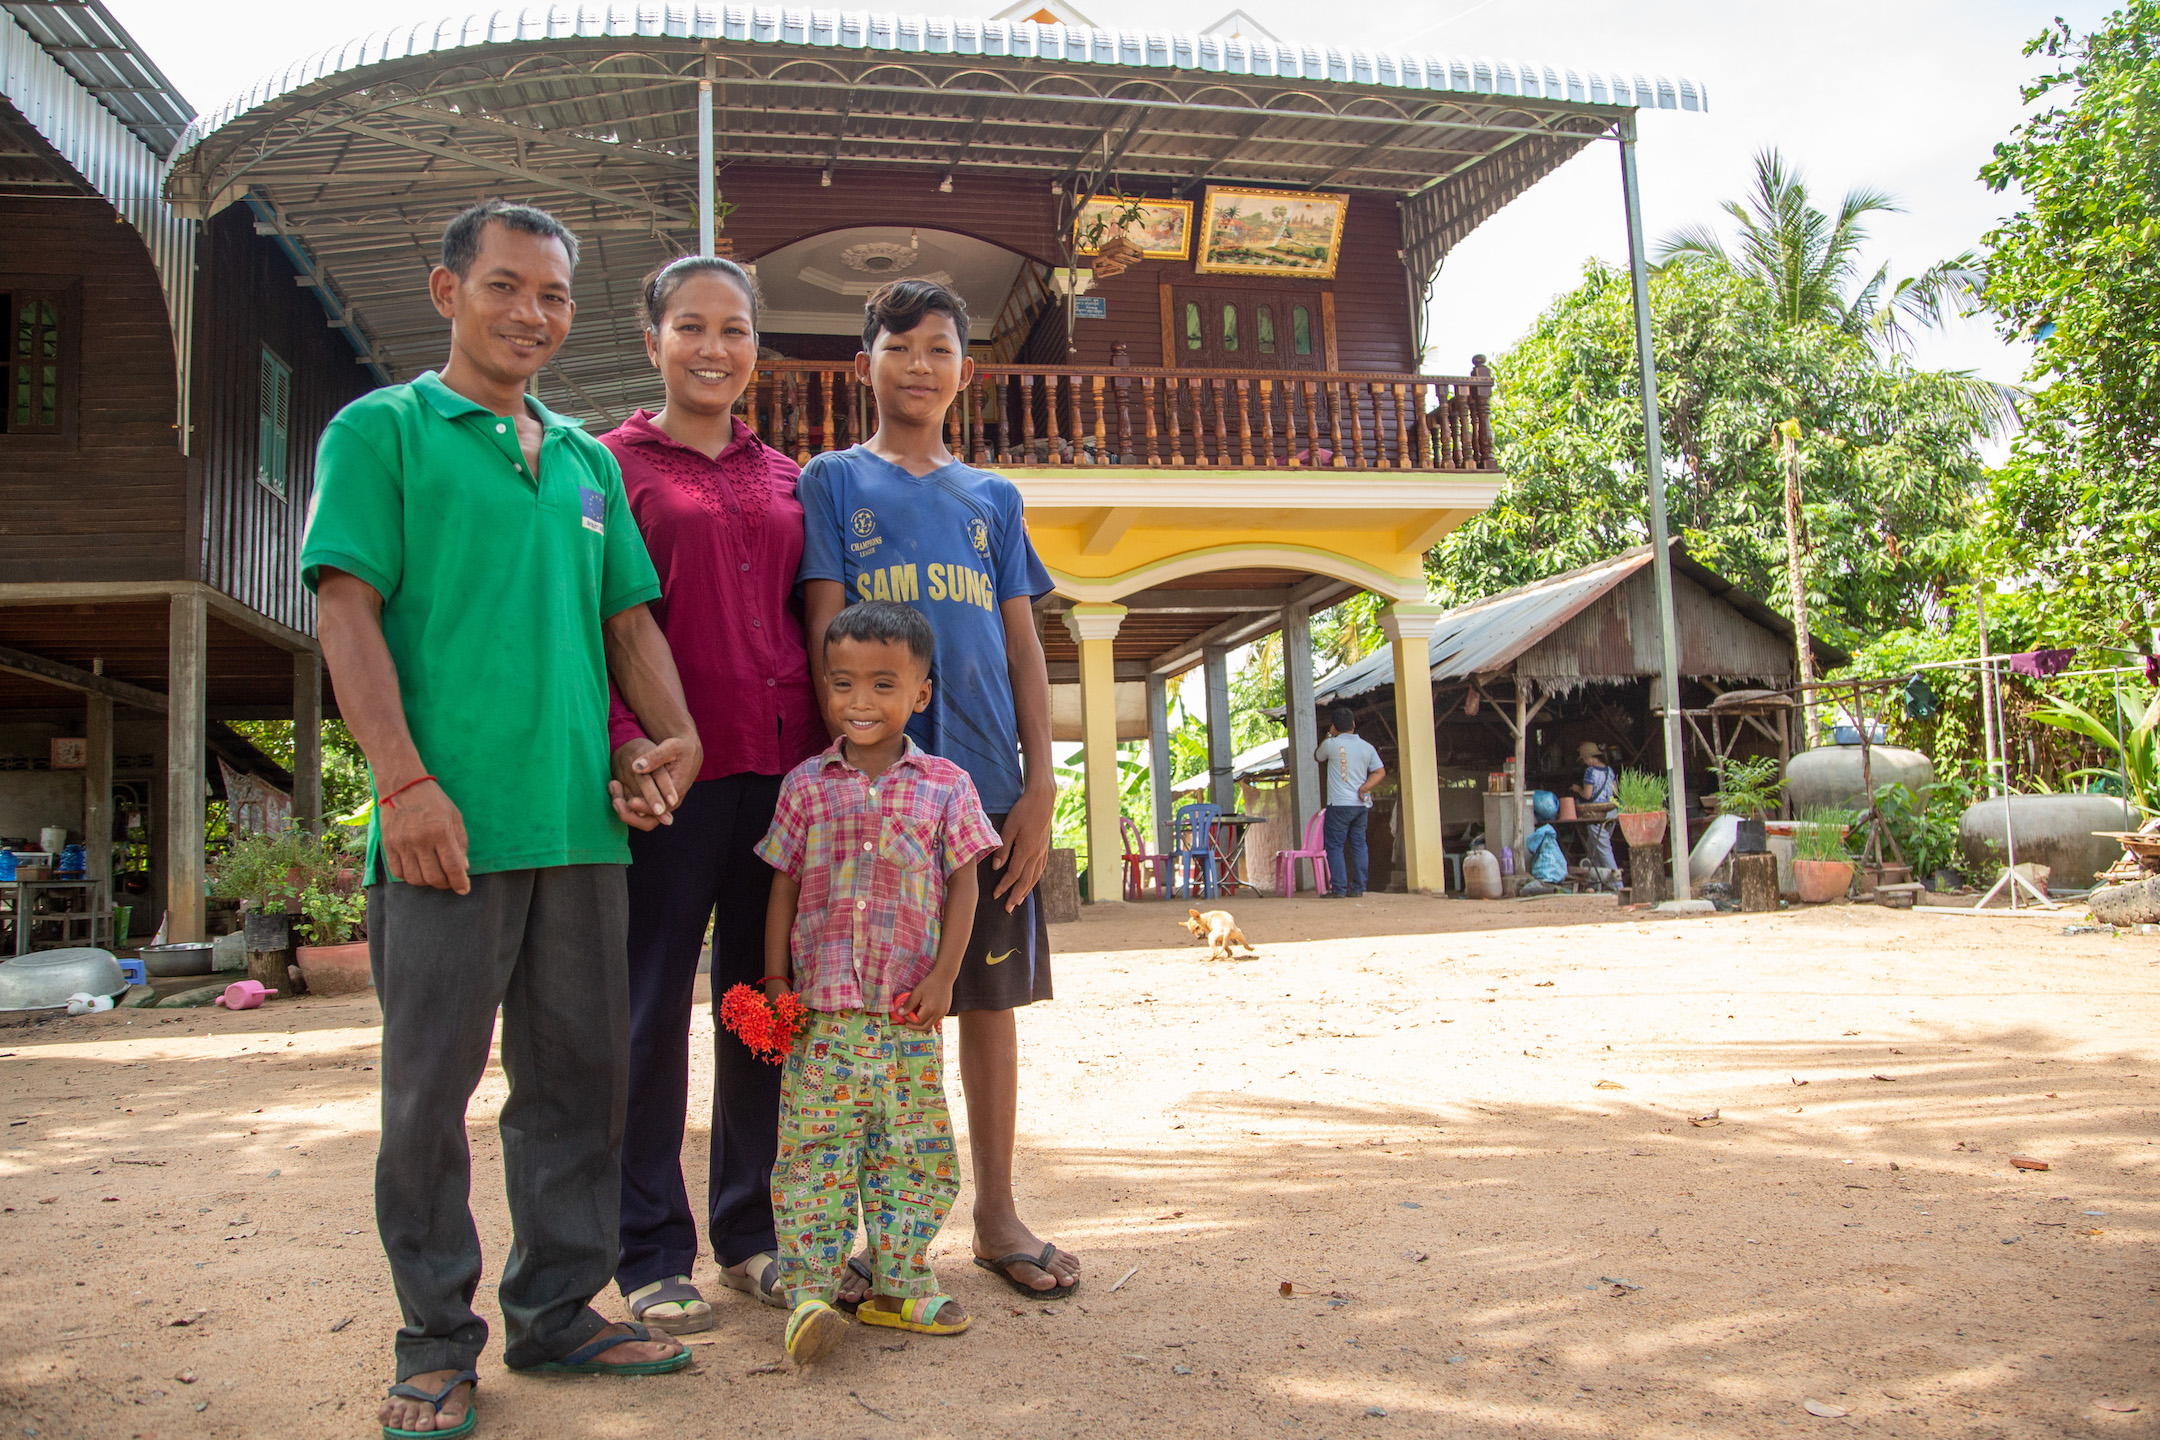 Rith Chantha, her husband, Sun Sitaol, and their two children stand smiling in front of their new home.